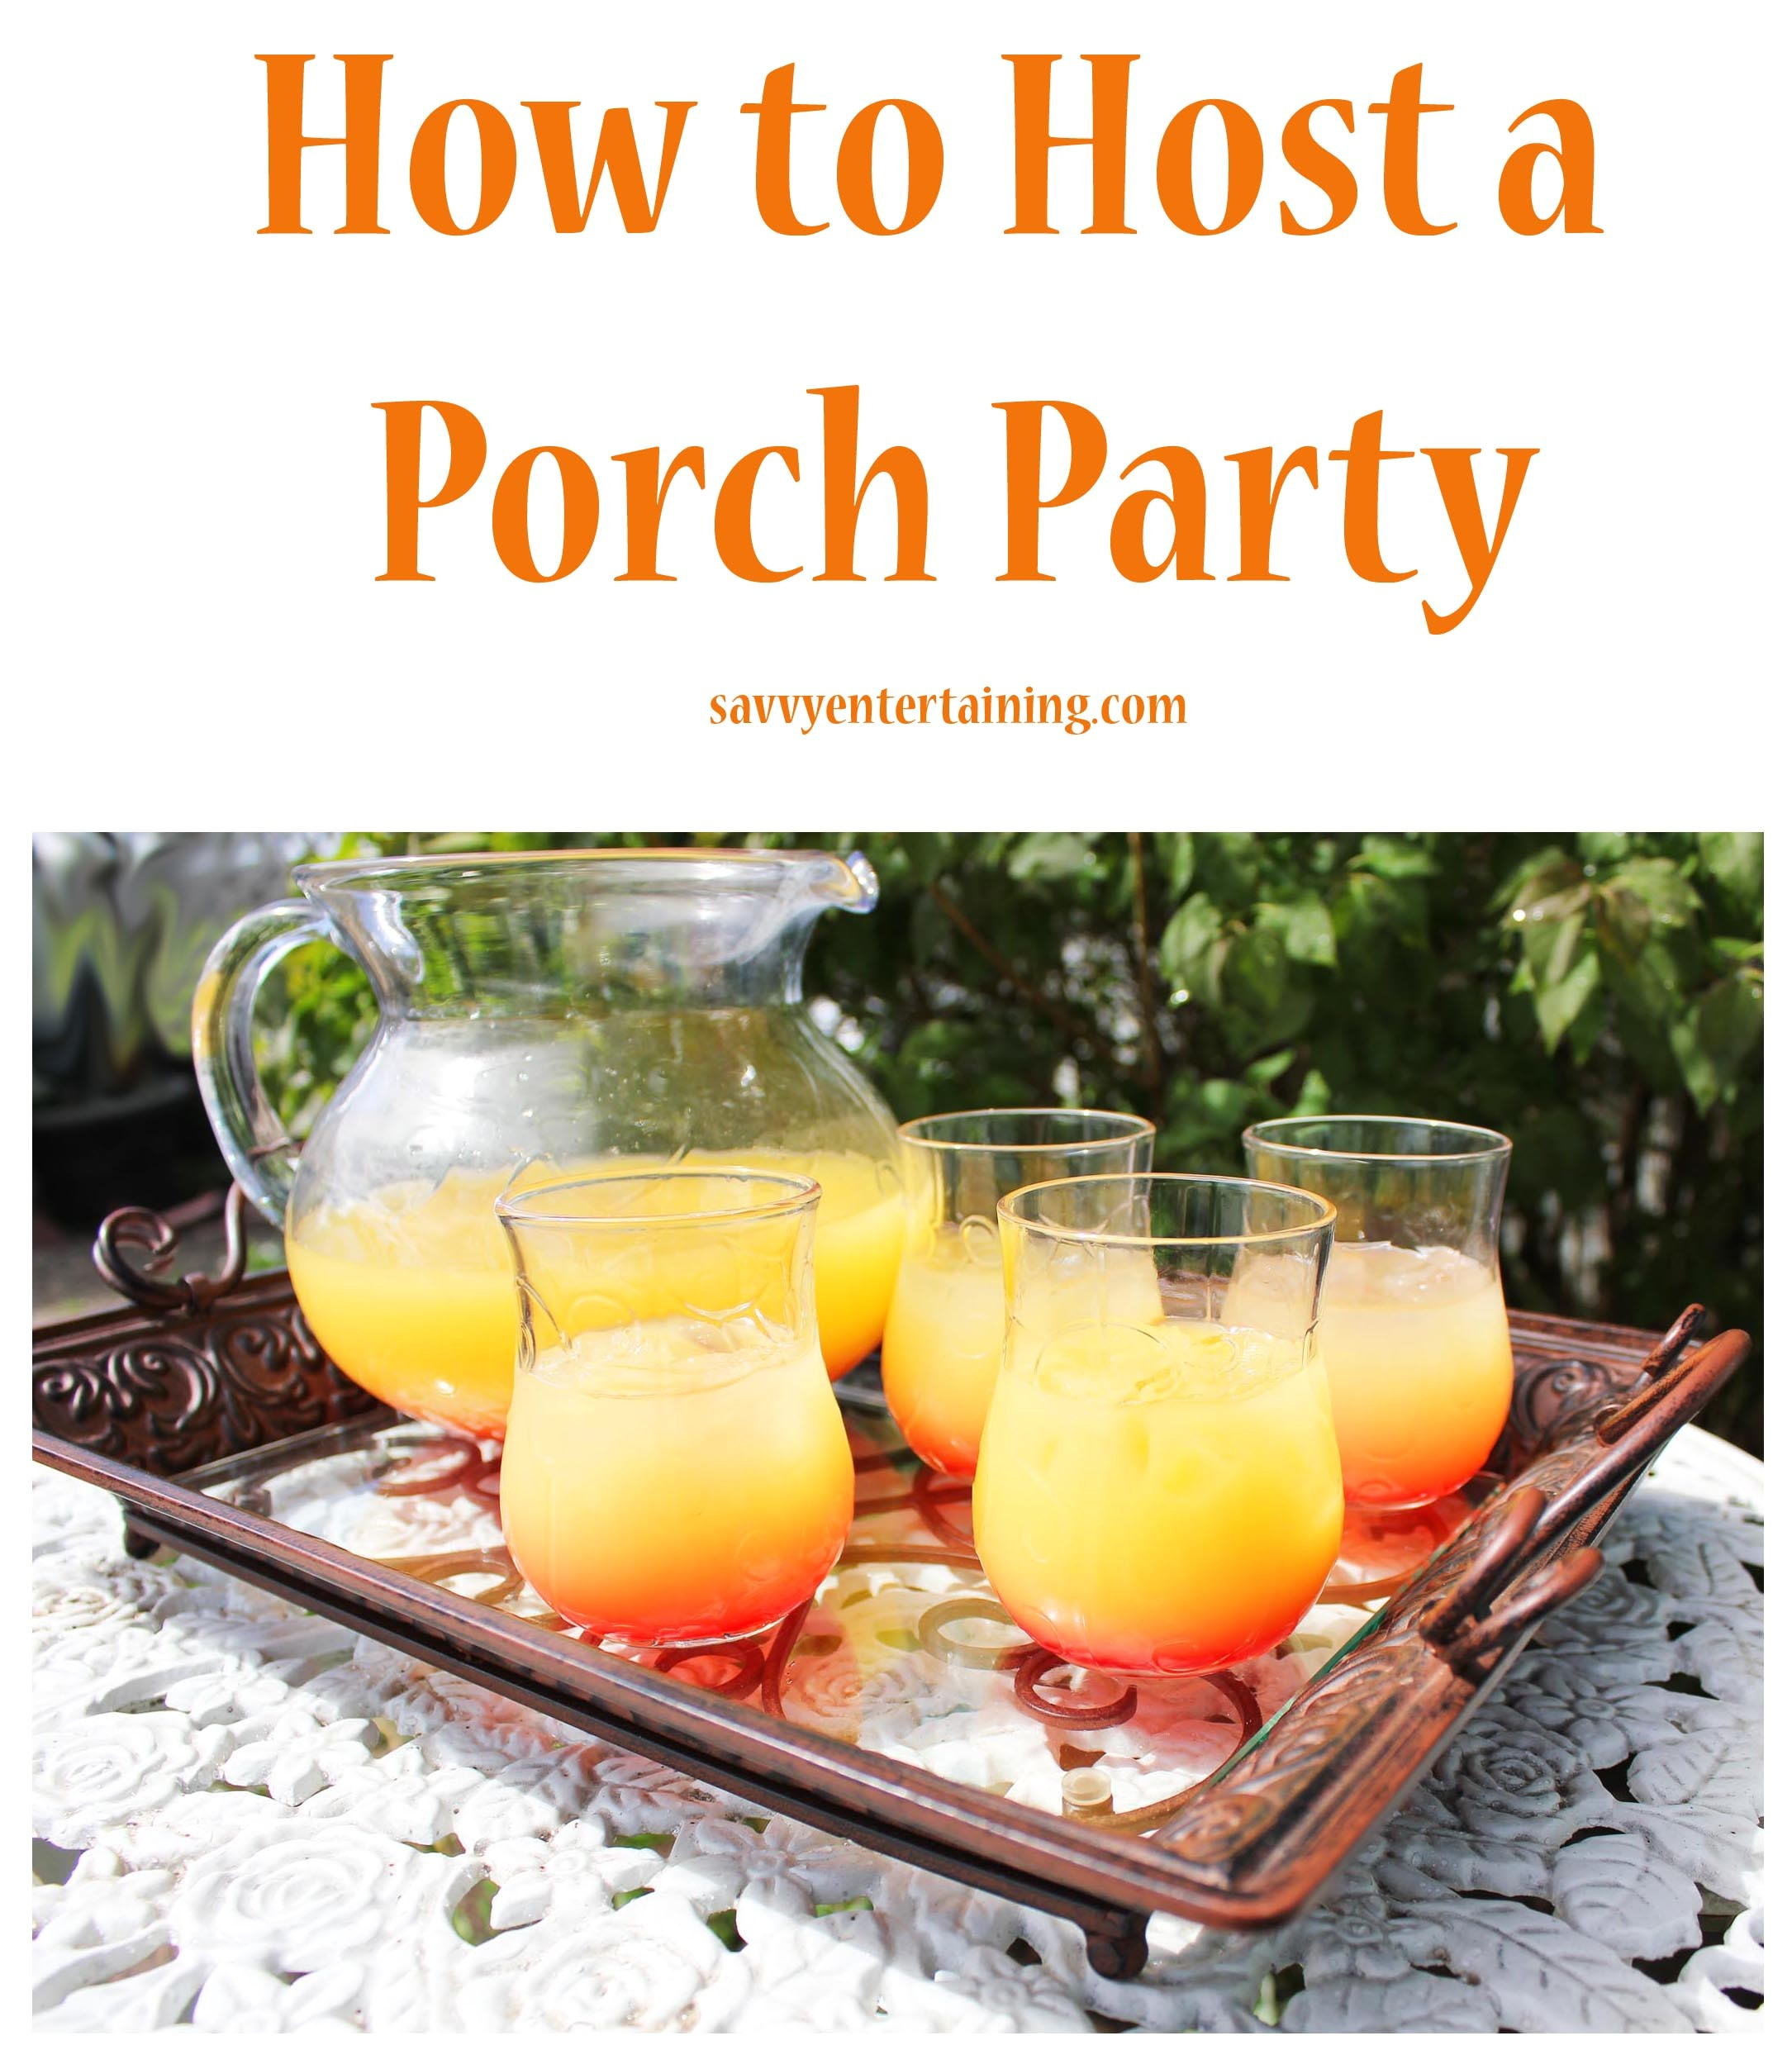 host a porch party